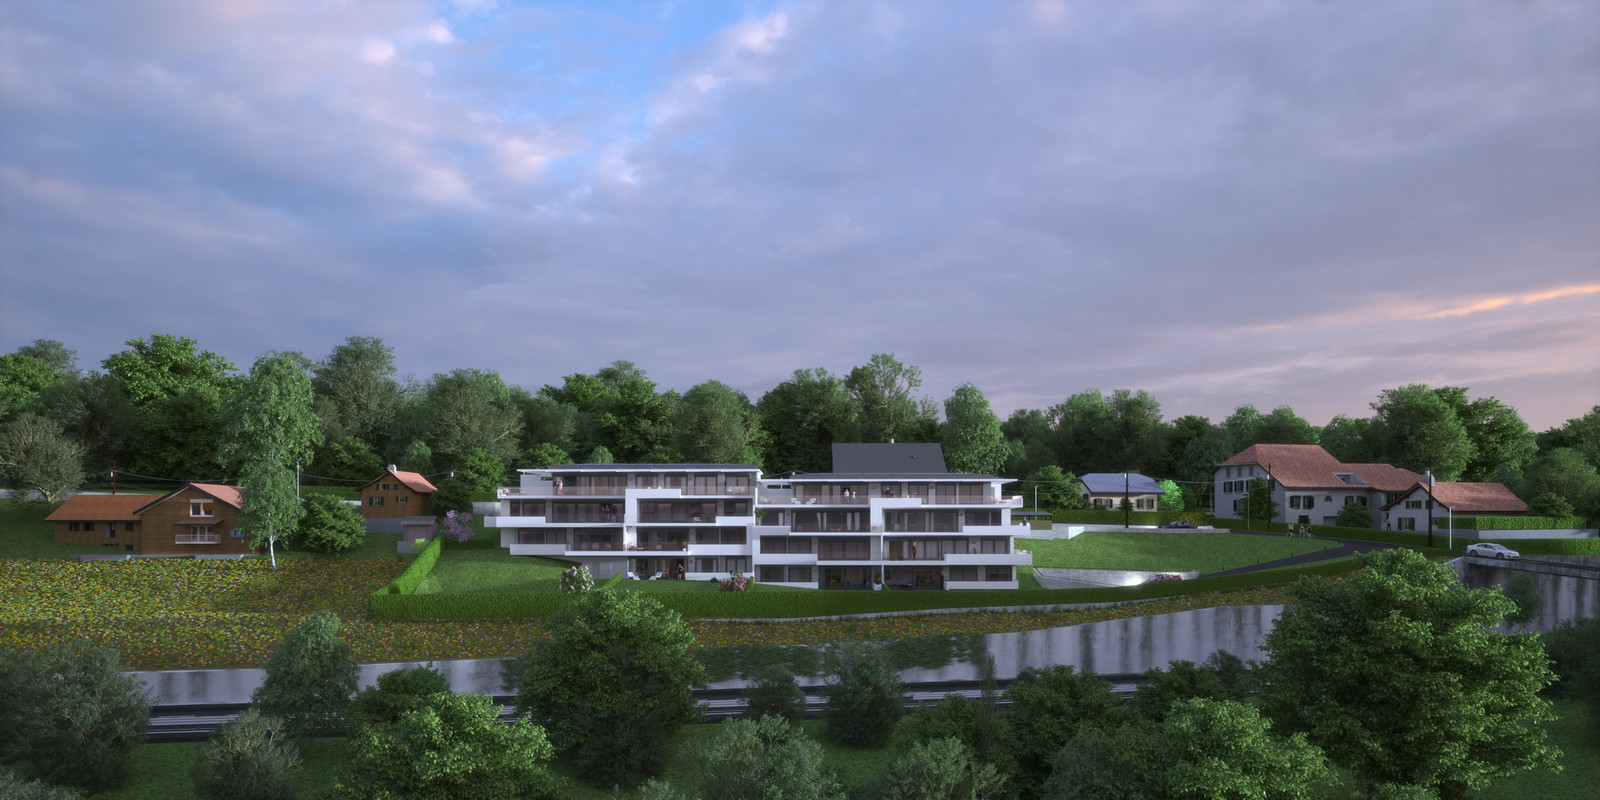 SketchUp 2018 + Thea Render  Project Lutry Thea Full work file 05 No Fog 2018-Scene 124 2 pt layers 274 hdr   HDR by HDRI-SKIES found here: http://hdri-skies.com/shop/hdri-sky-274/